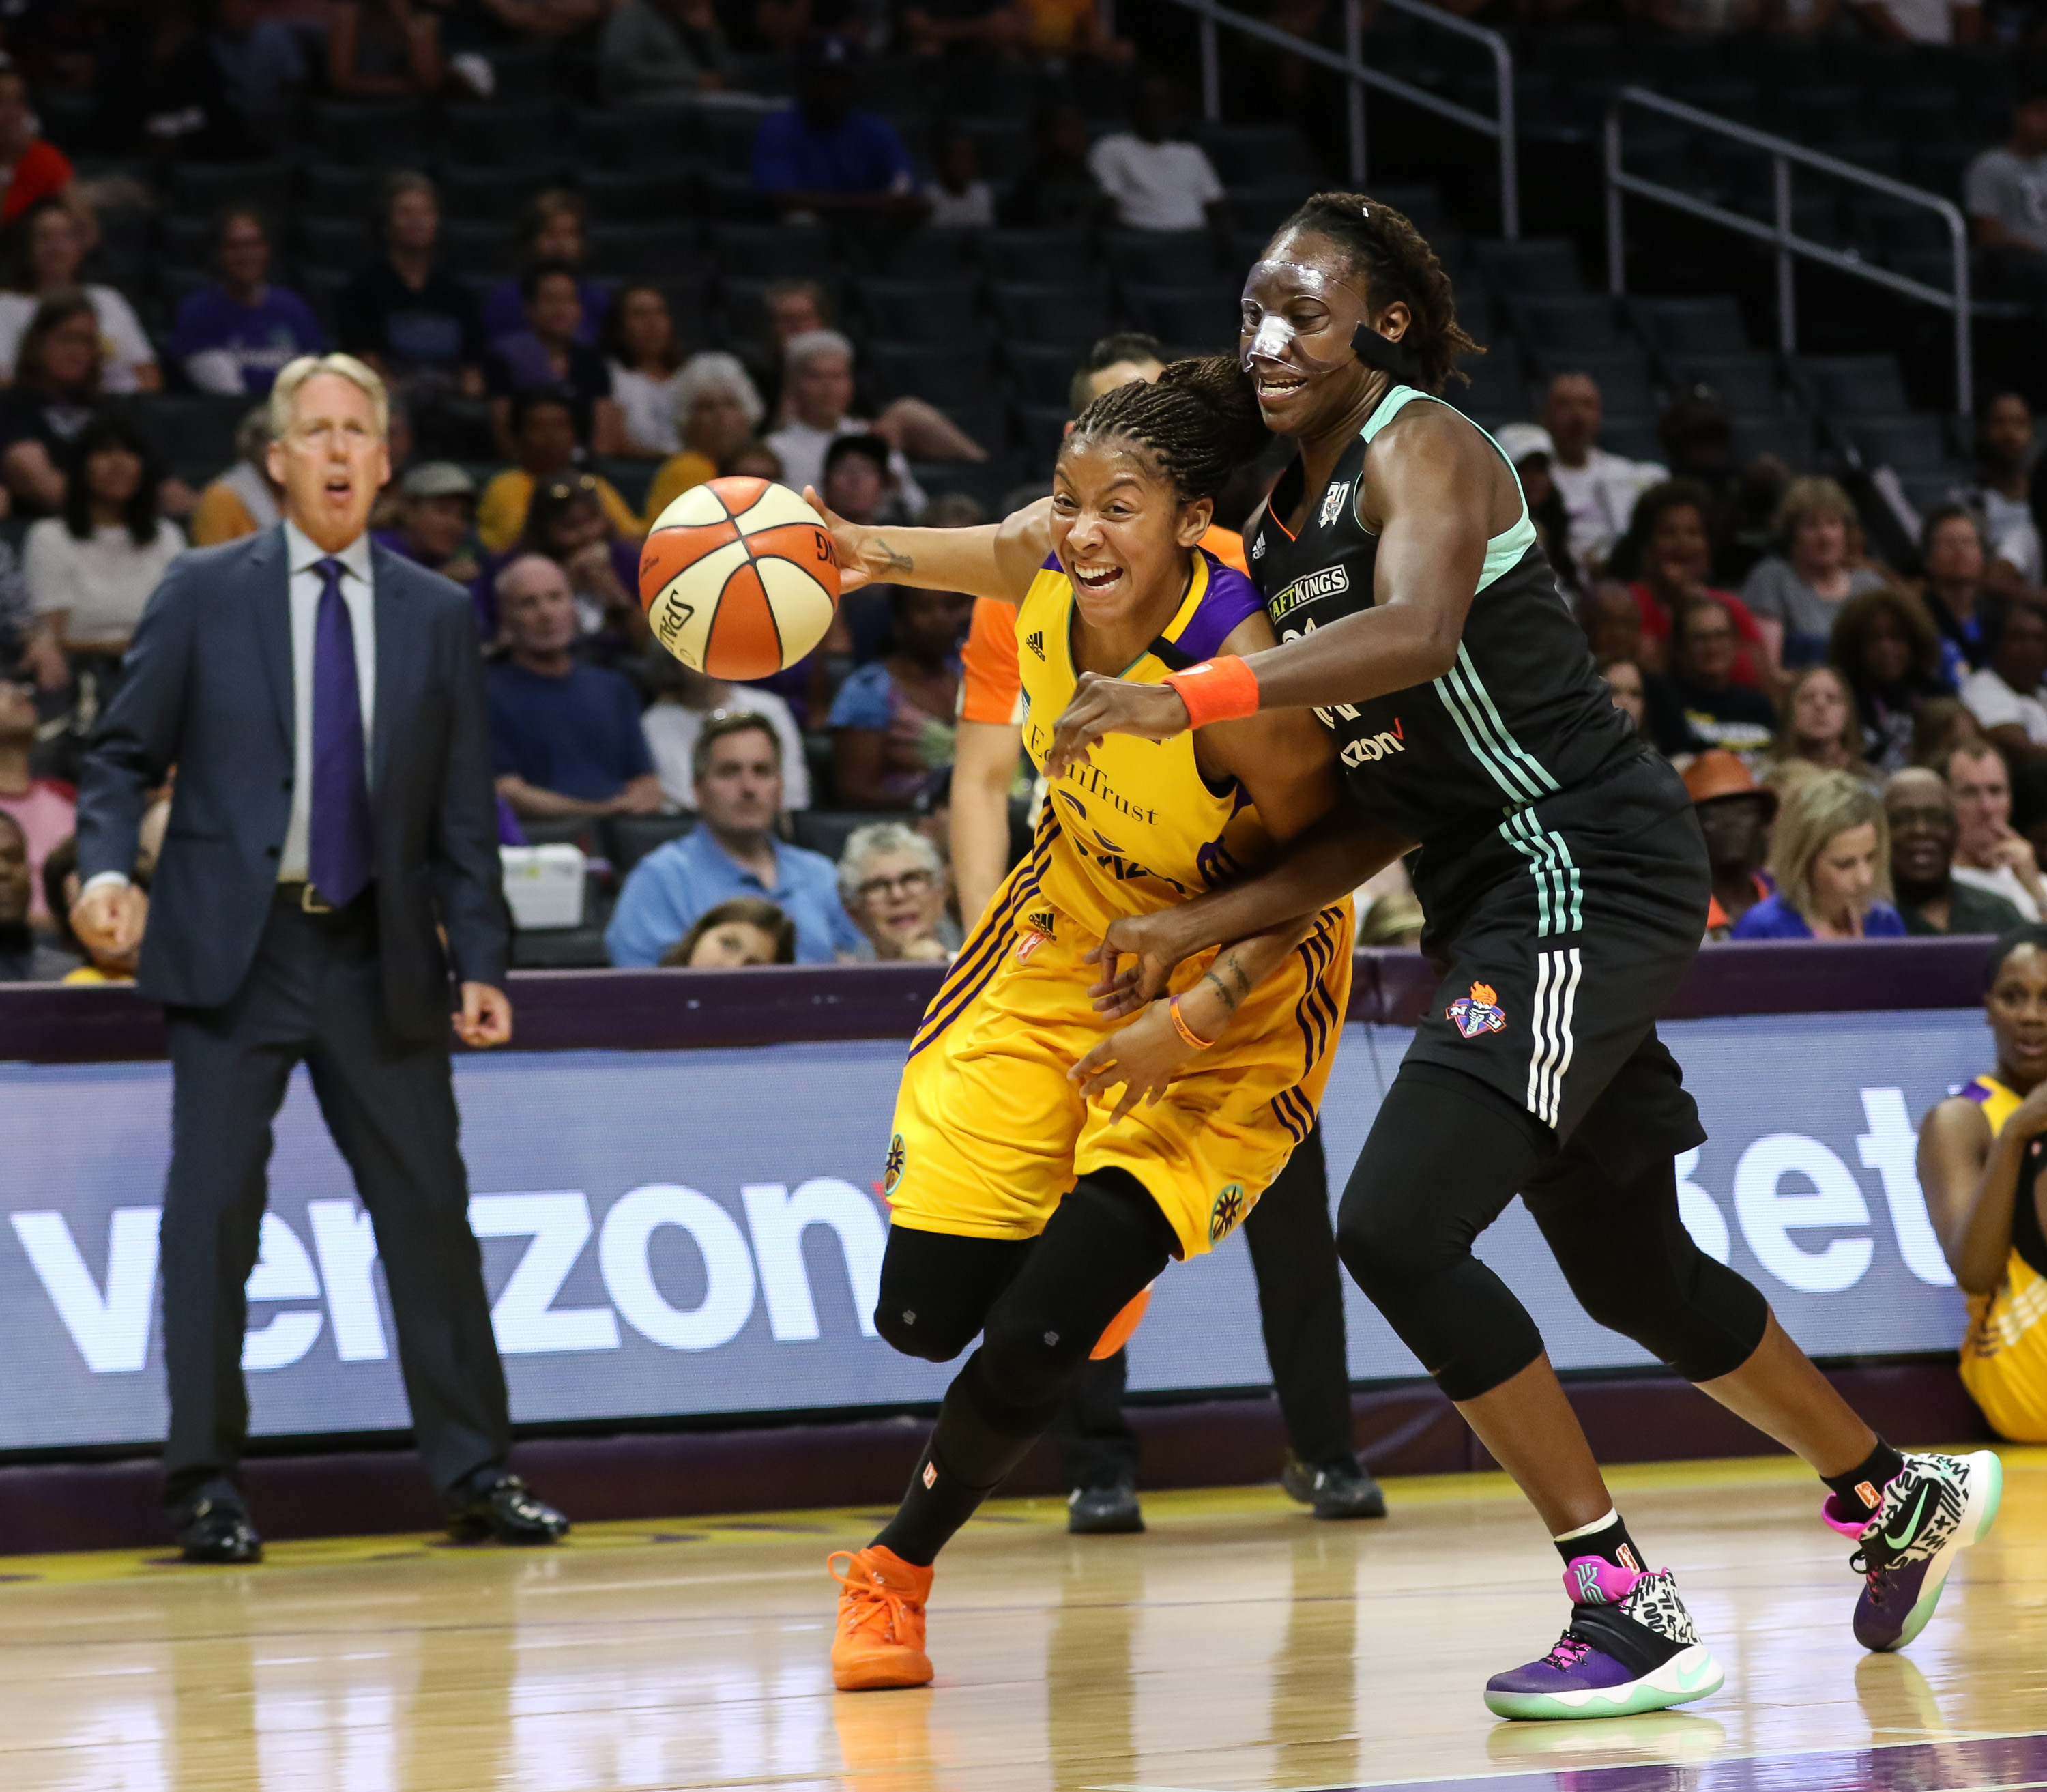 Candace Parker sliding by Tina Charles in first half of the New York Liberty vs Los Angeles Sparks game at Staples Center in Los Angeles, Ca on July 3, 2016. (Photo by Jevone Moore/Full Image 360)